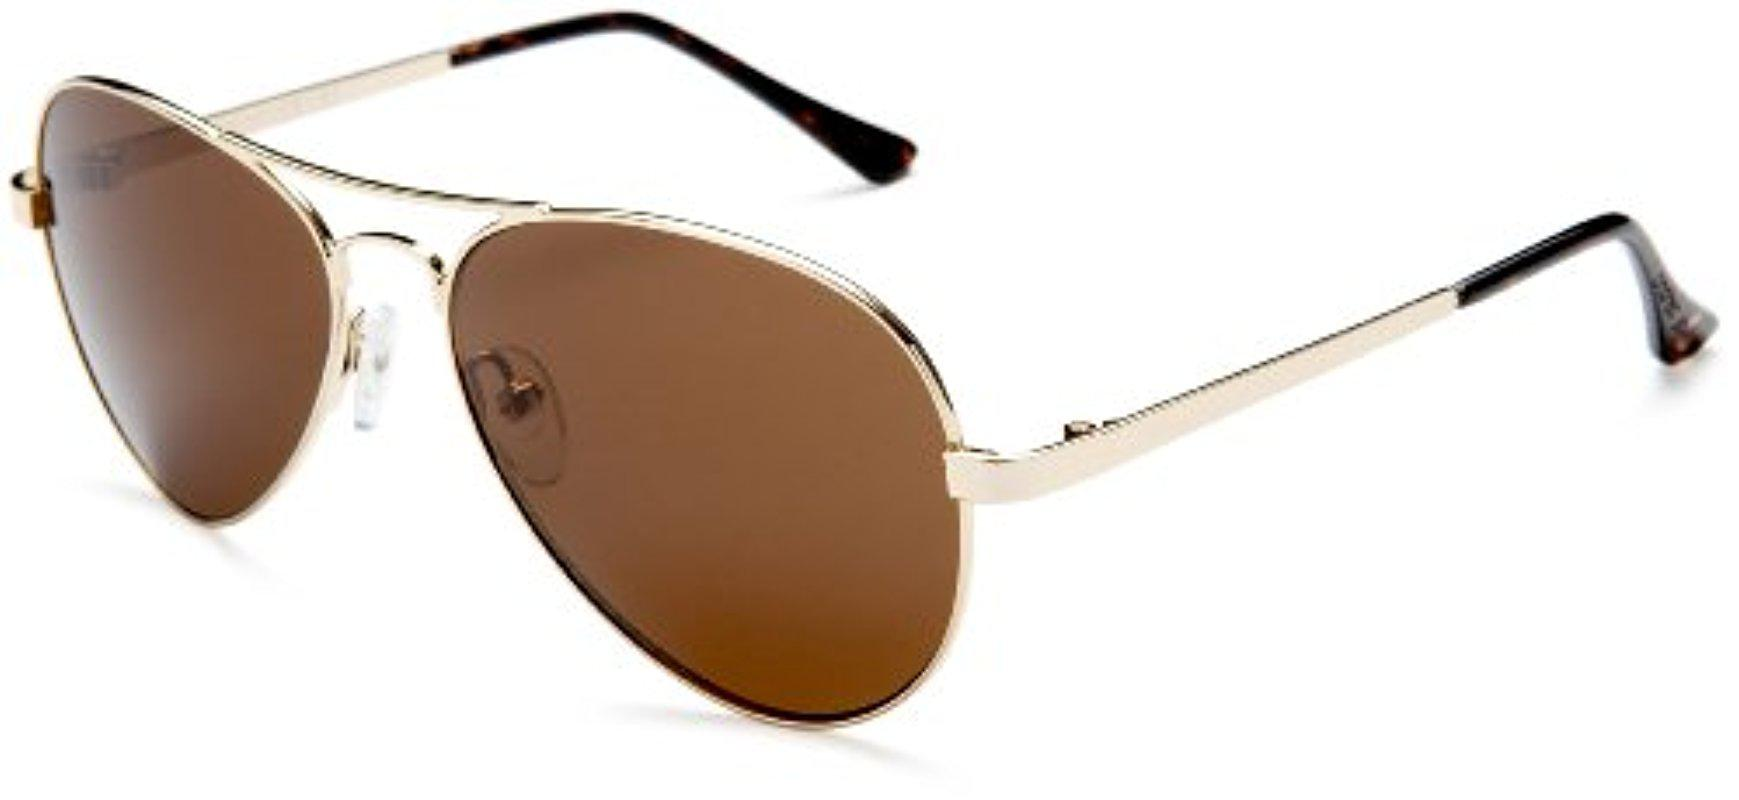 9892a40434 Lyst - Andrea Jovine A652 Aviator Sunglasses in Brown